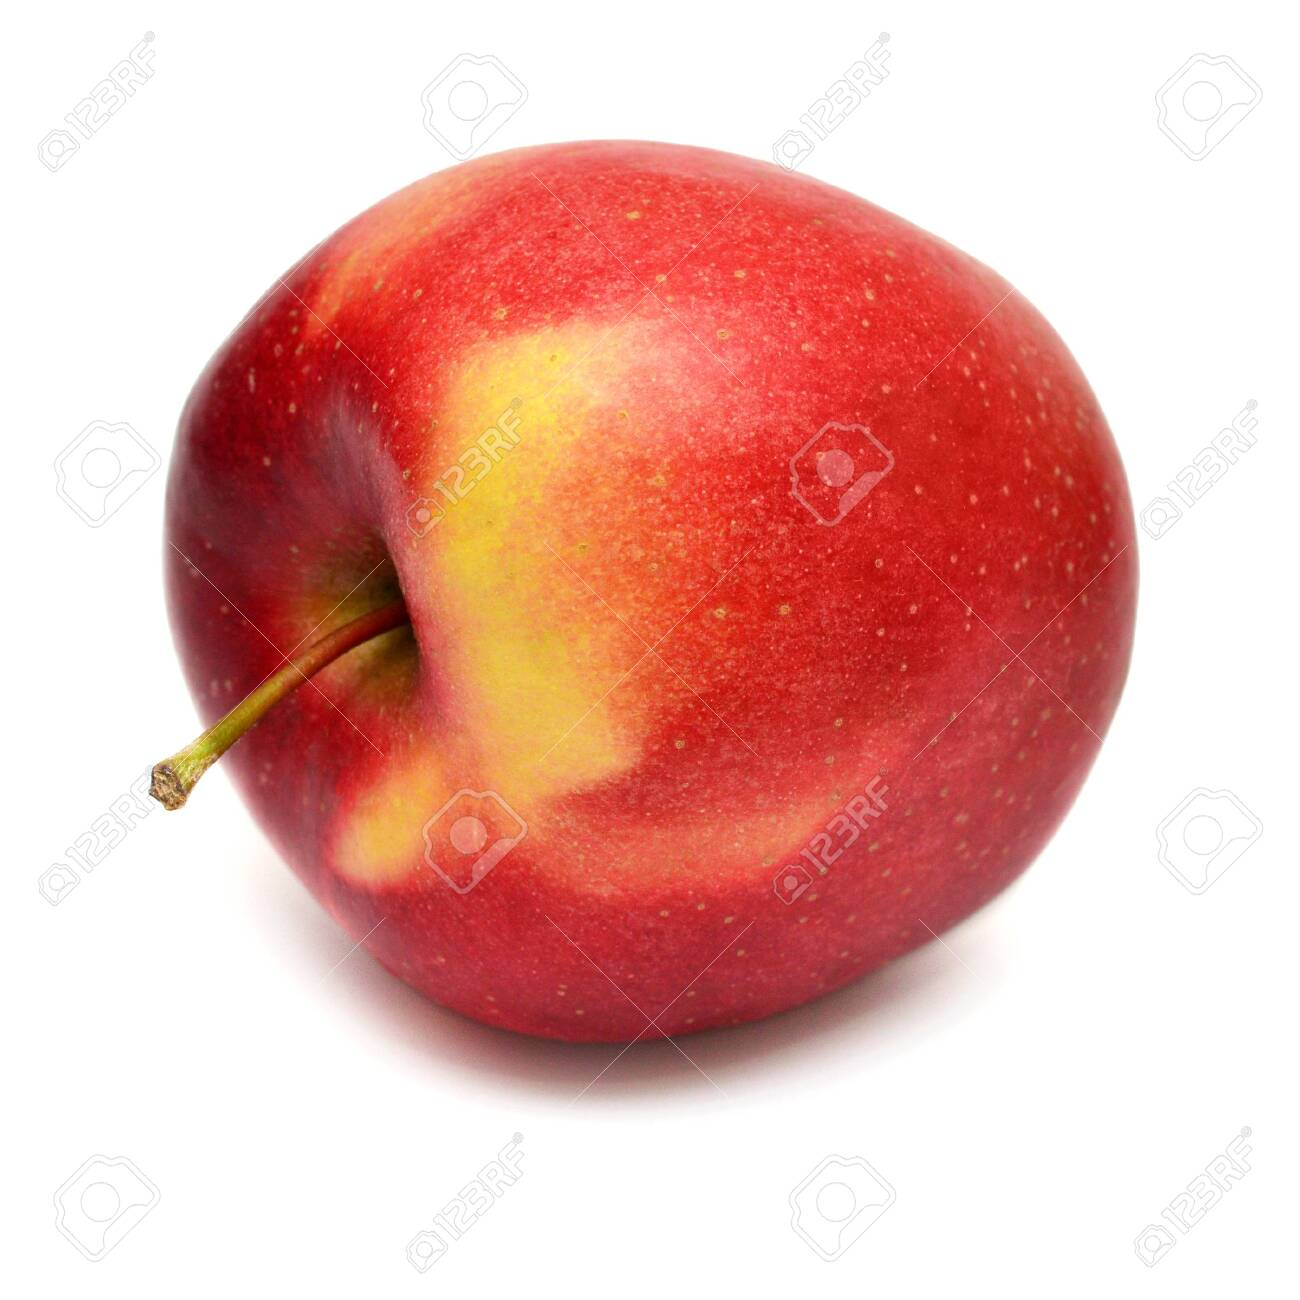 Red apple closeup fruit isolated on white background - 143211566